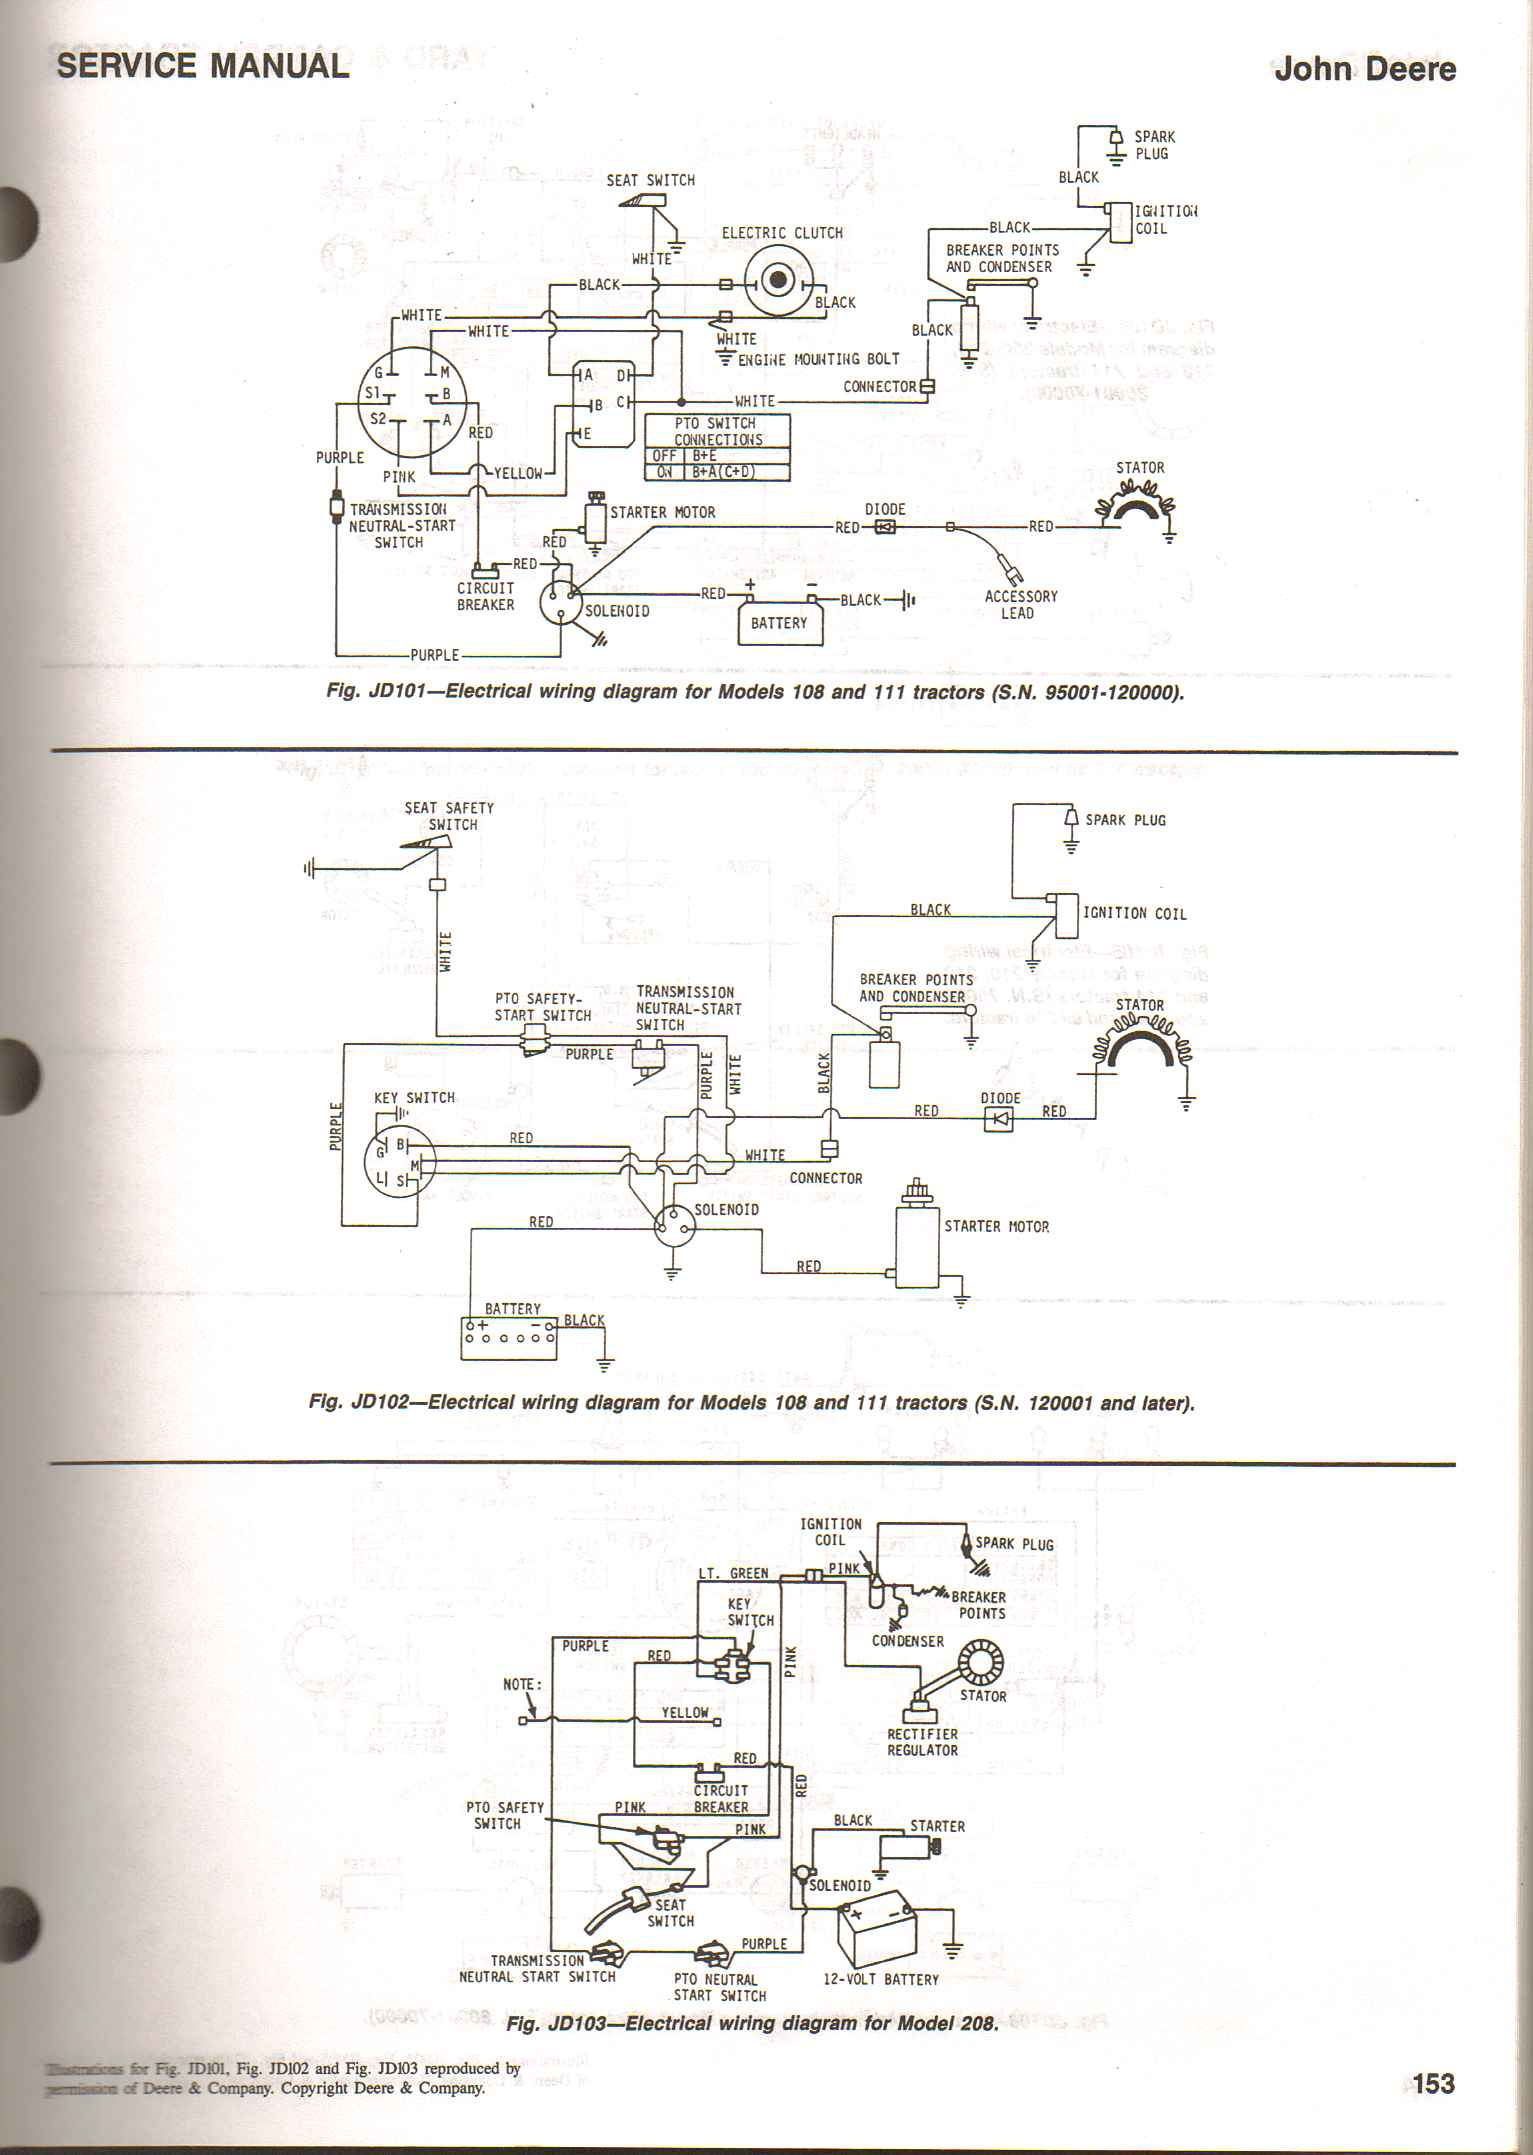 How and where do the wires hook up to the clutch on a deere 111? John Deere Gs Wiring Diagram on john deere 210 lawn tractor, john deere js30, john deere gs 45, john deere lawn mower parts, john deere pull behind cart, john deere parts list, john deere 210 with grass catcher, john deere parts catalog, john deere tricked out 69, john deere parts diagrams, john deere commercial mowers,